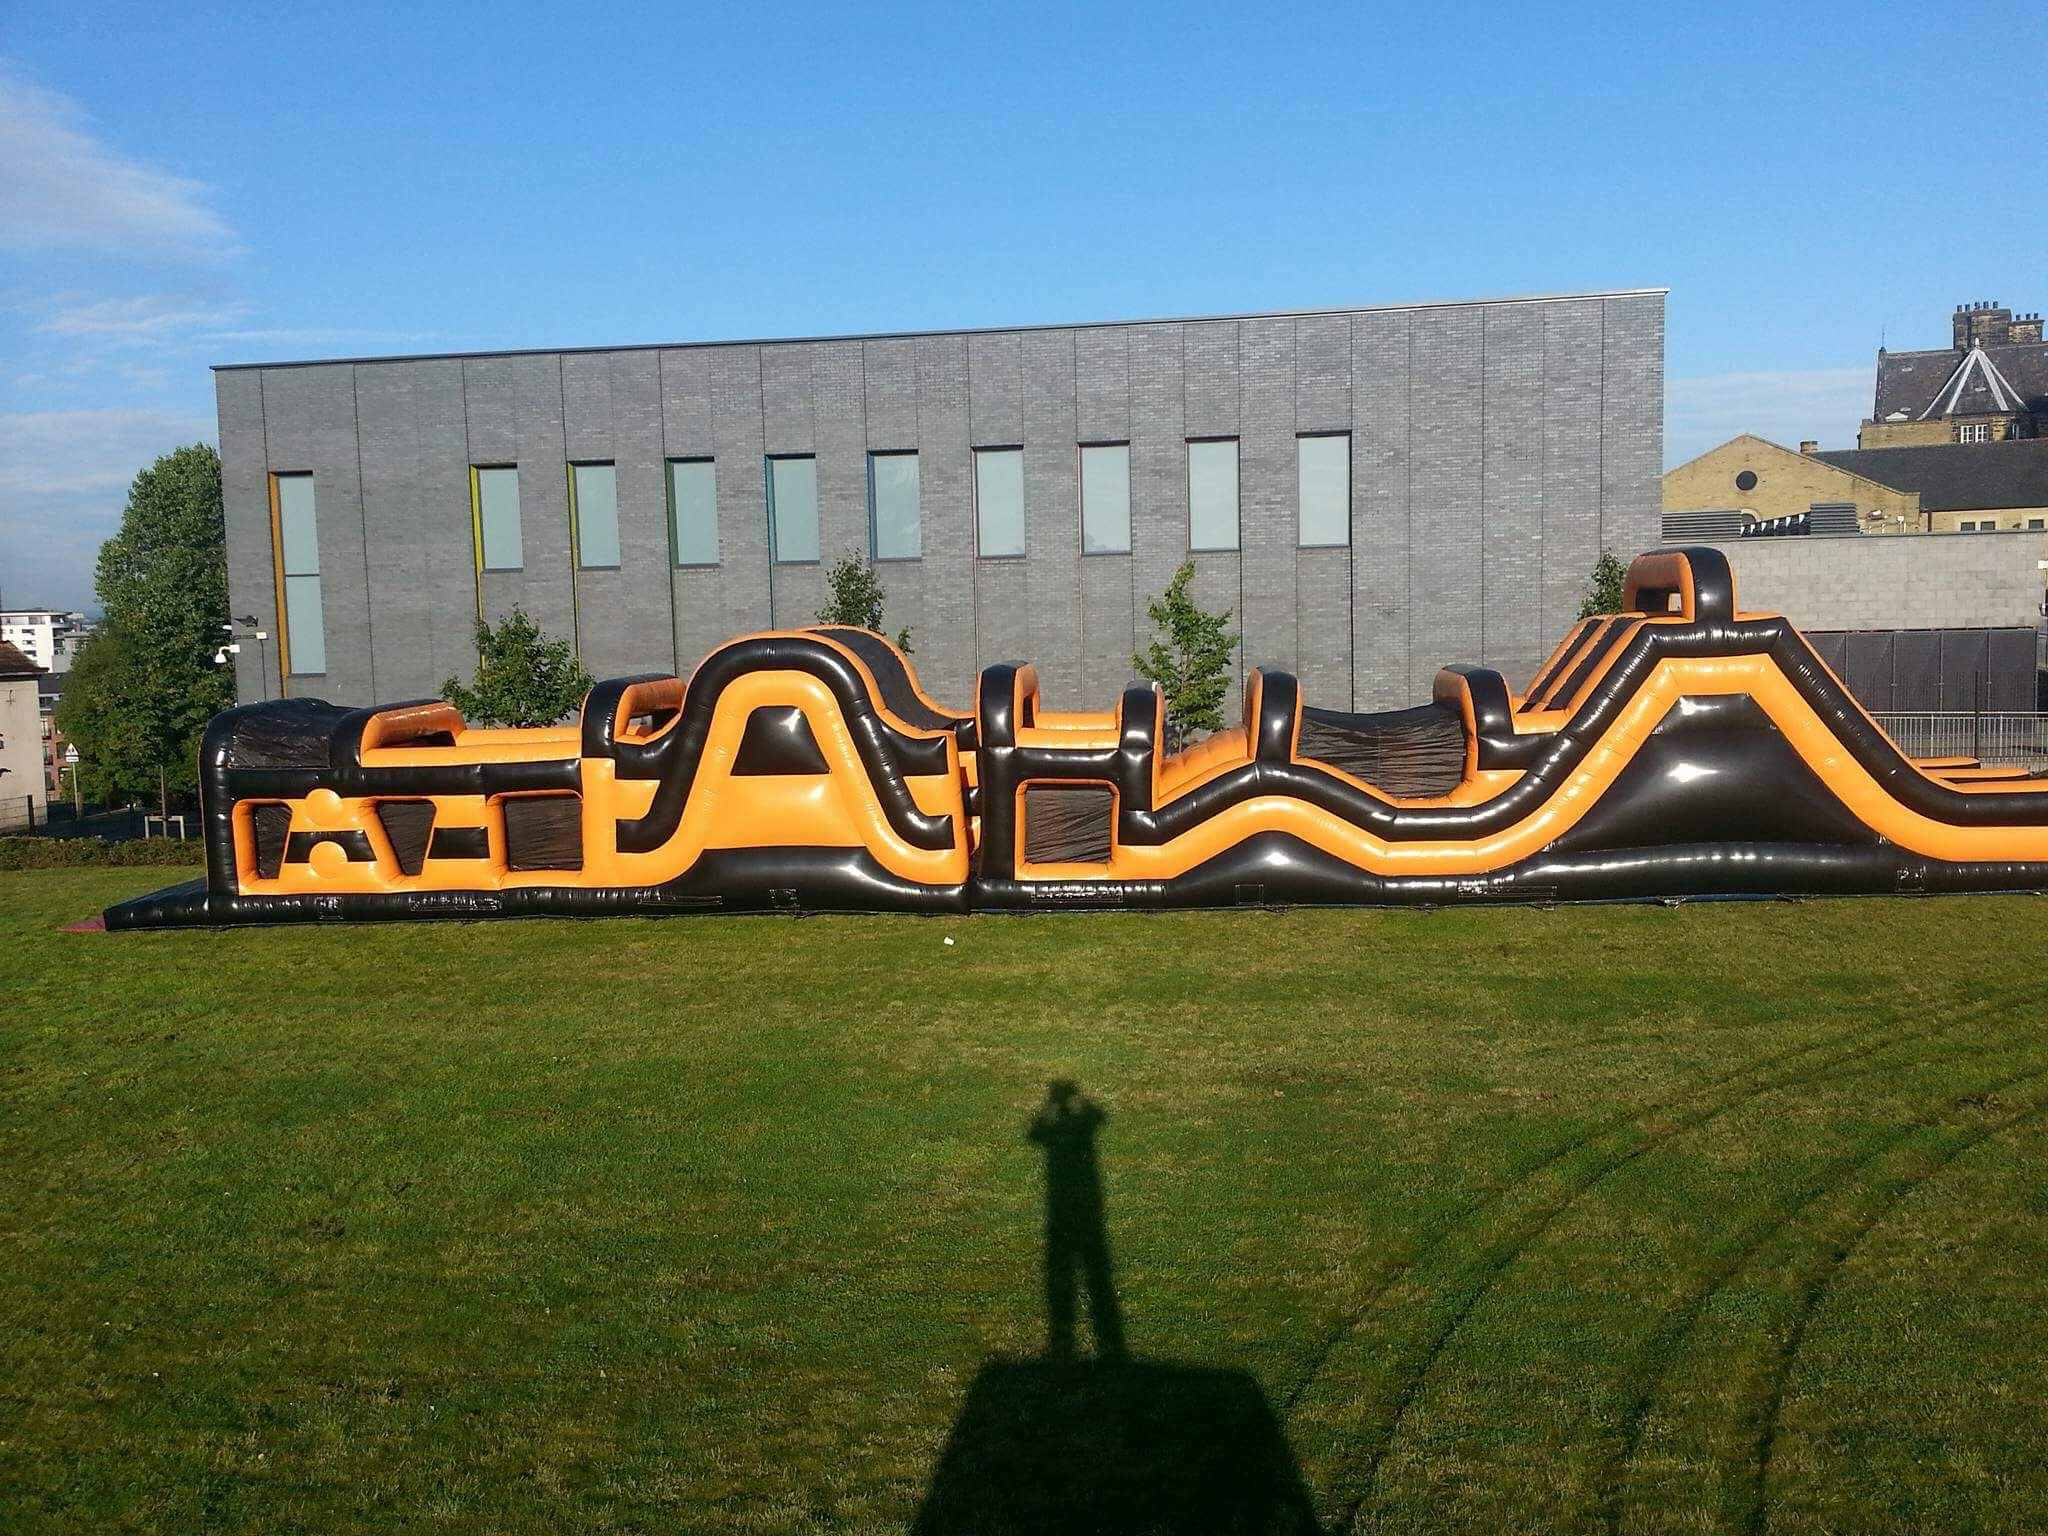 90foot inflatable boot camp assault course giant bouncy slide